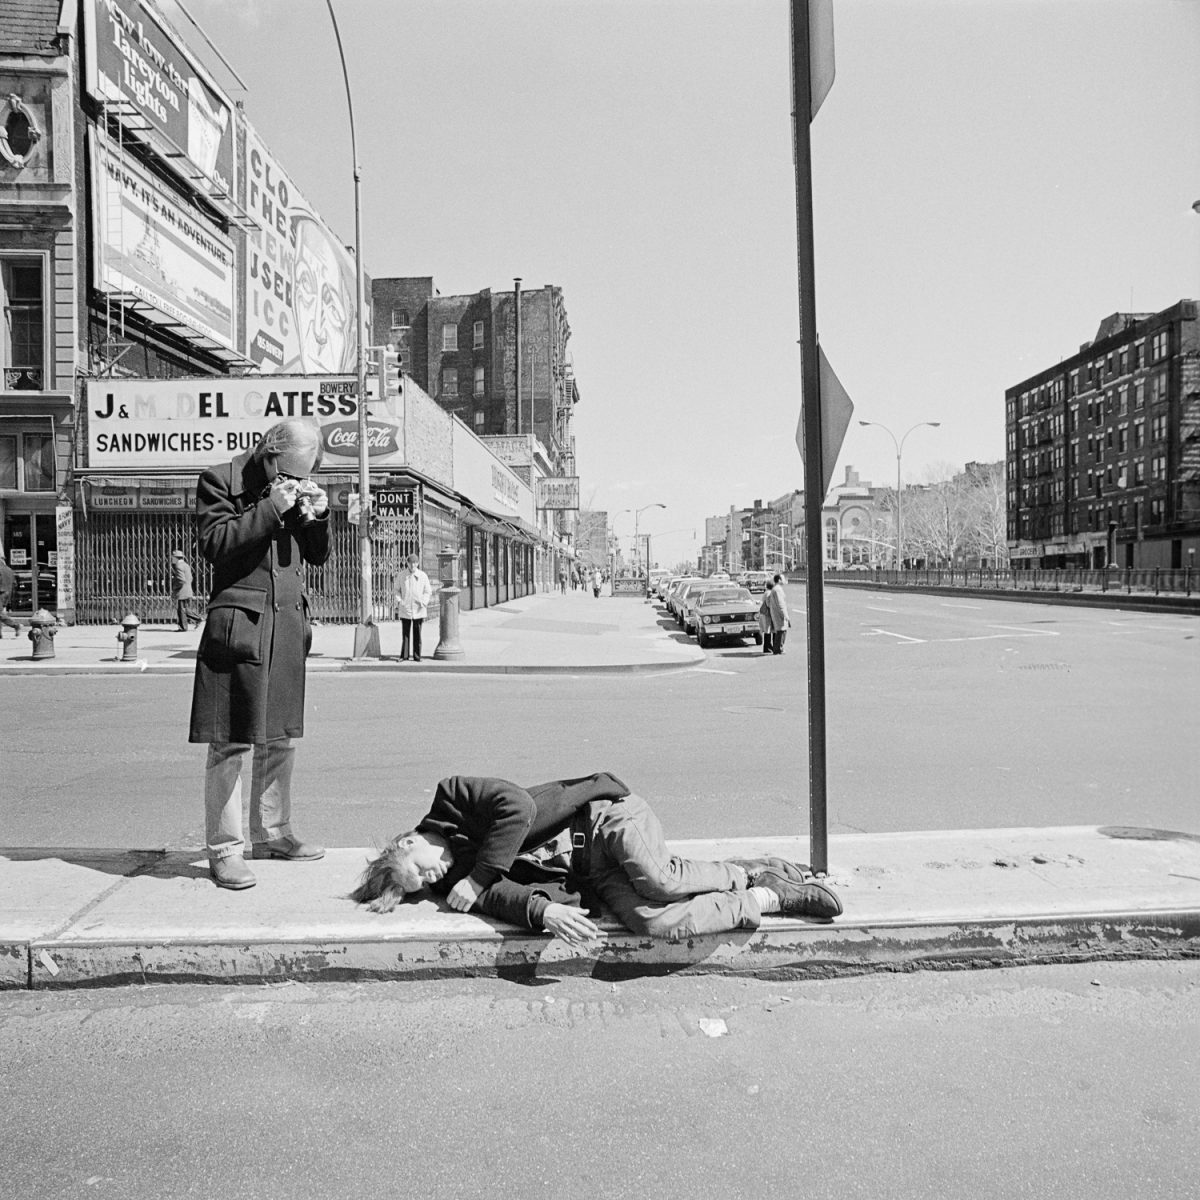 The Bowery New York - April 1977